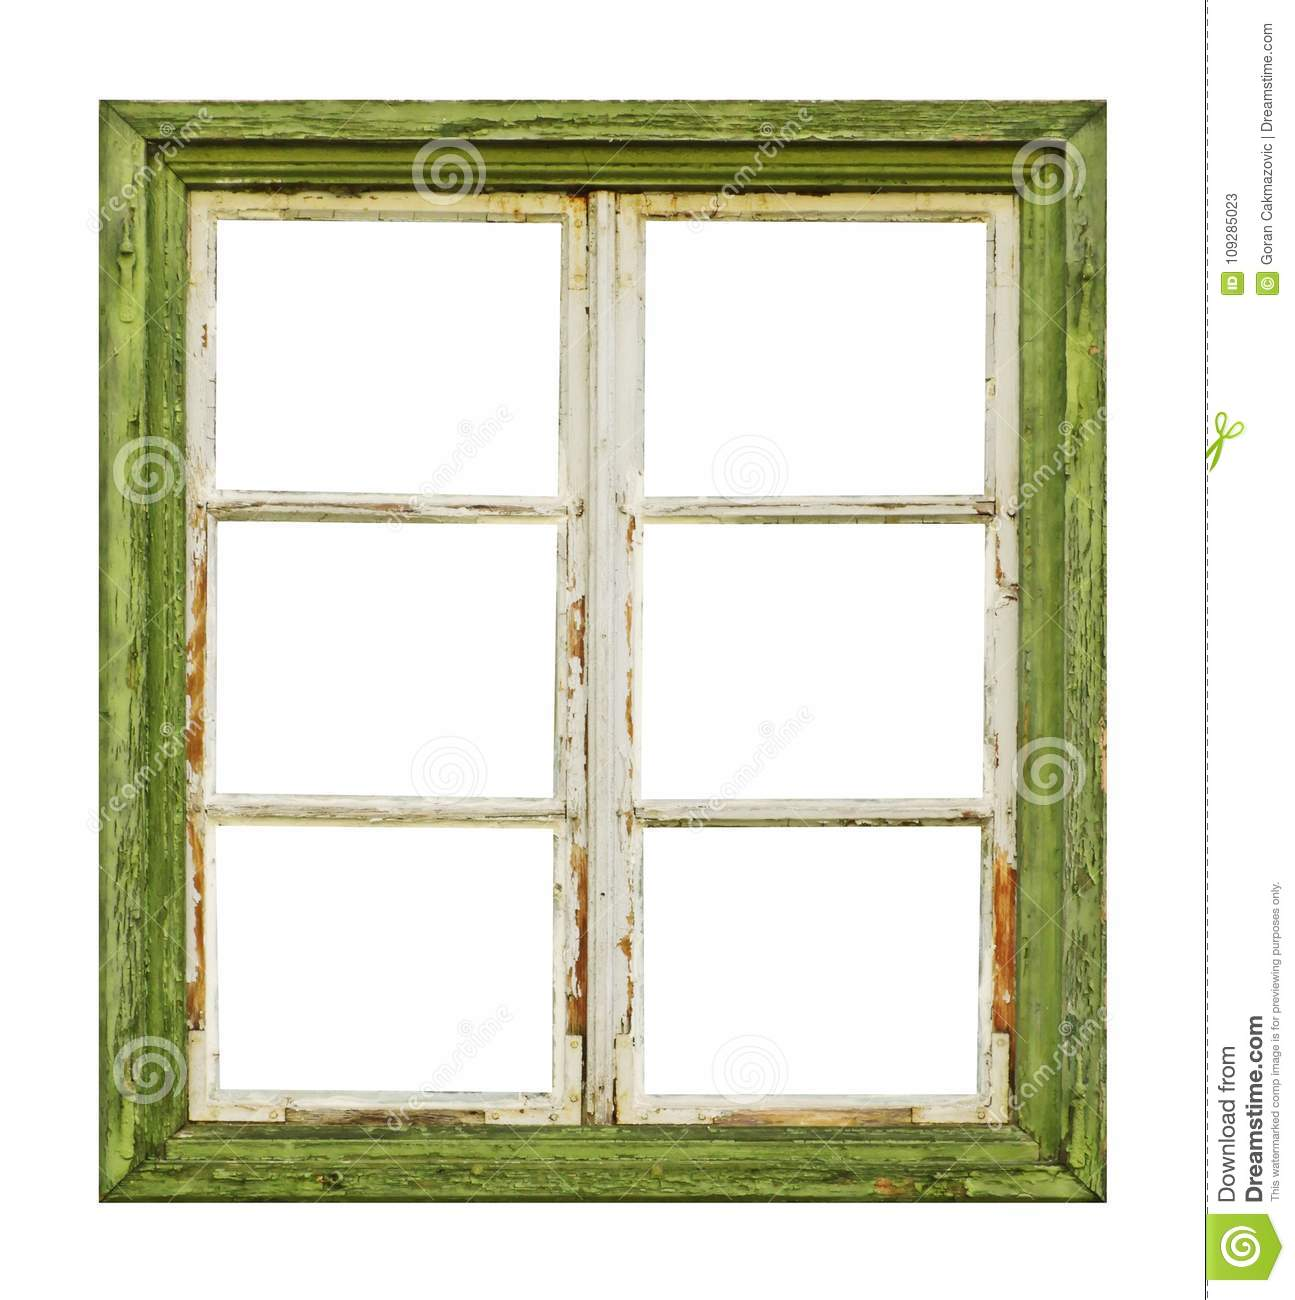 Old Wooden Window On White Background Stock Image - Image of frame ...